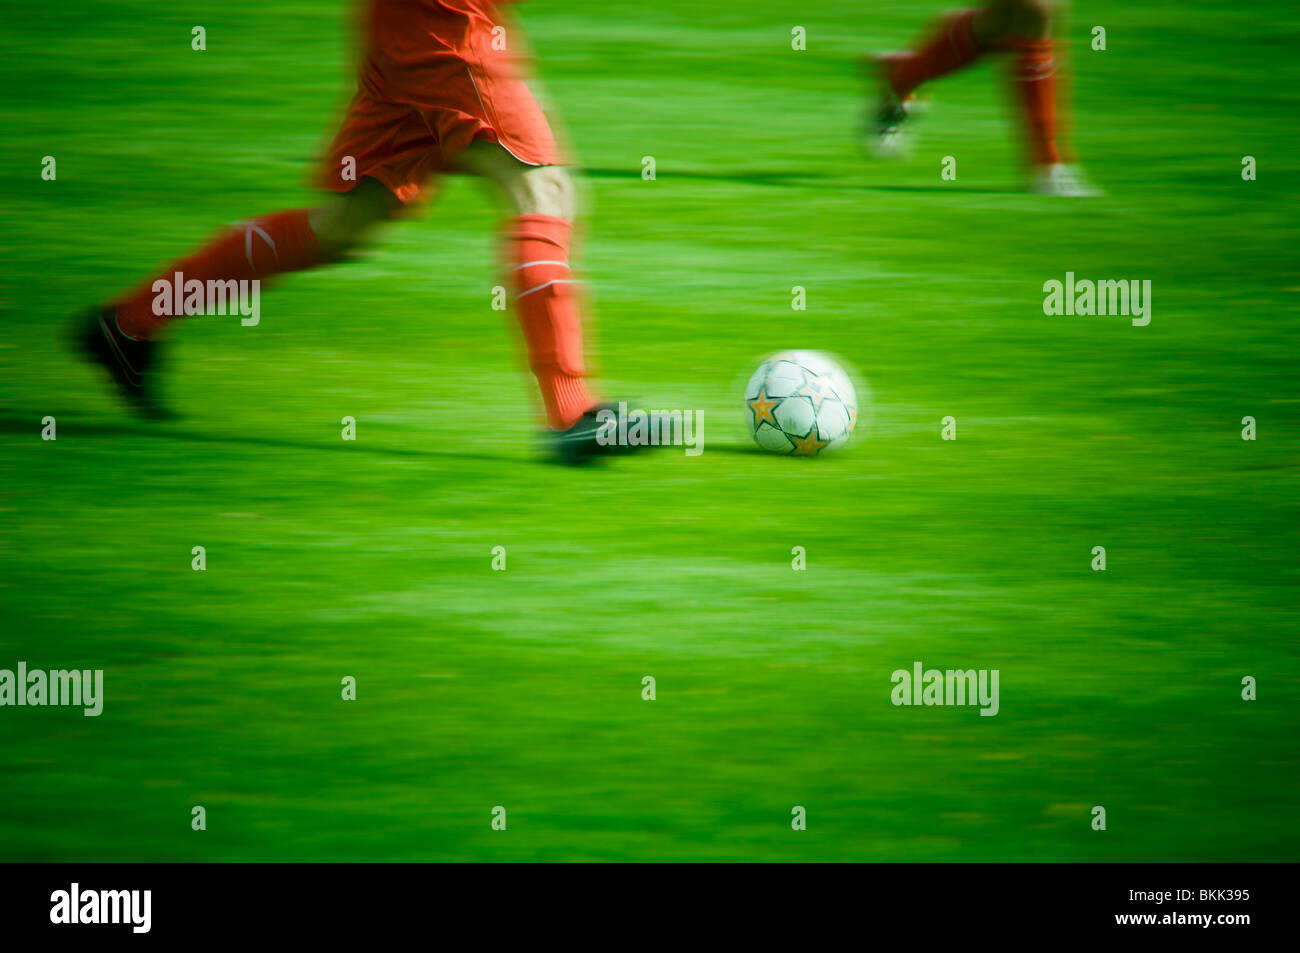 soccer players legs - Stock Image